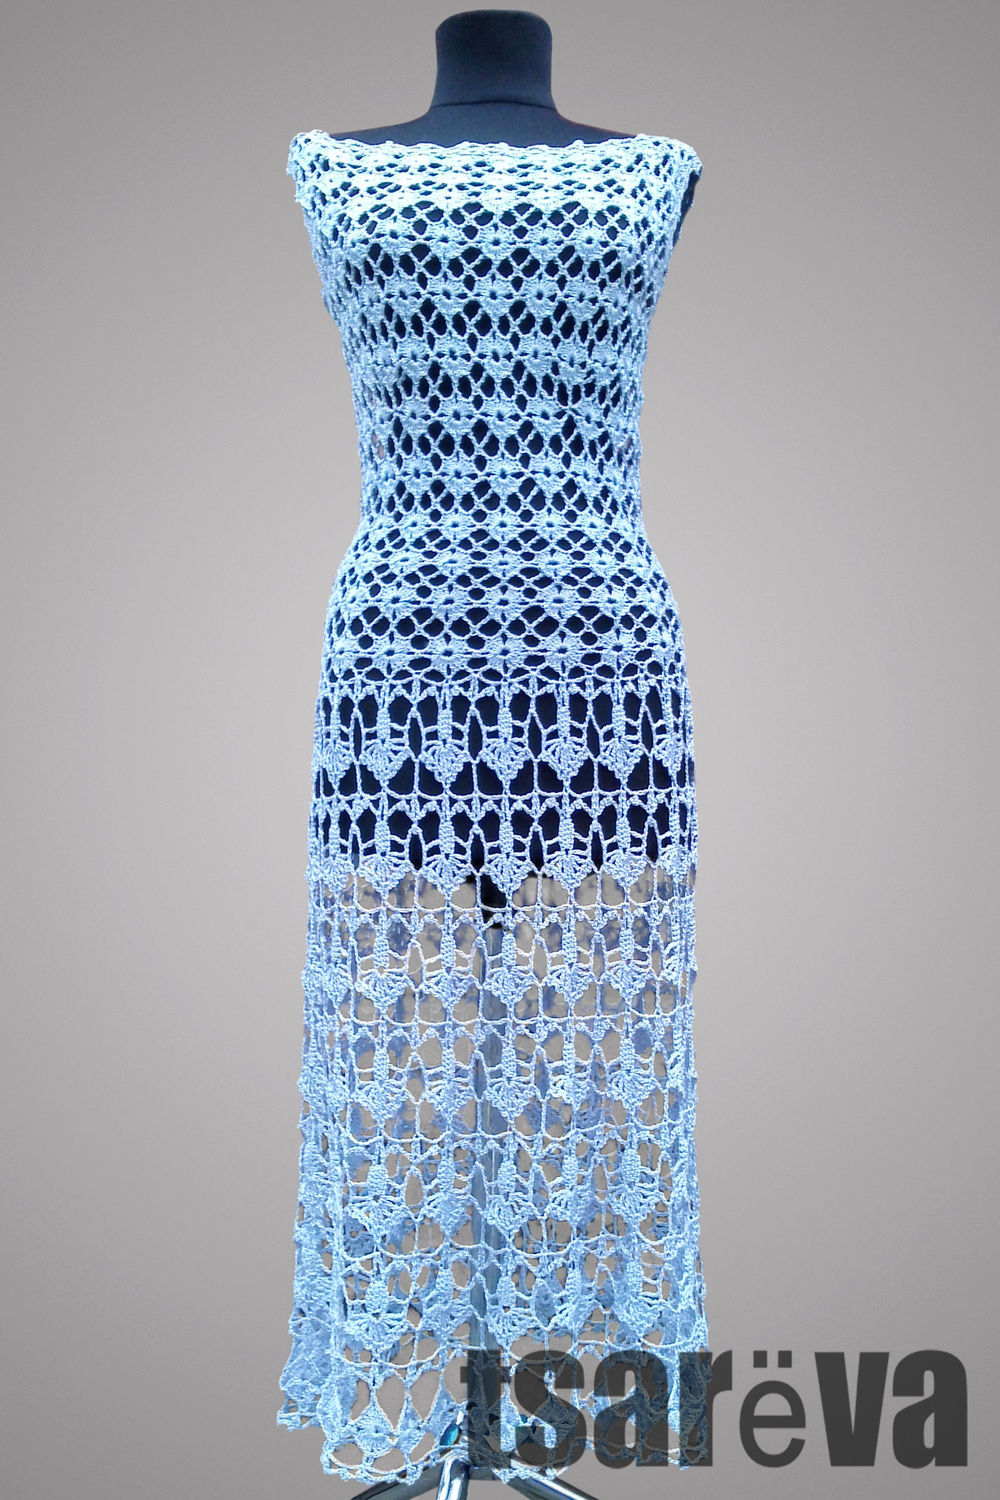 Crochet dress Aquarius. Elegant blue women handmade lace crochet dress, Dresses, Odessa,  Фото №1